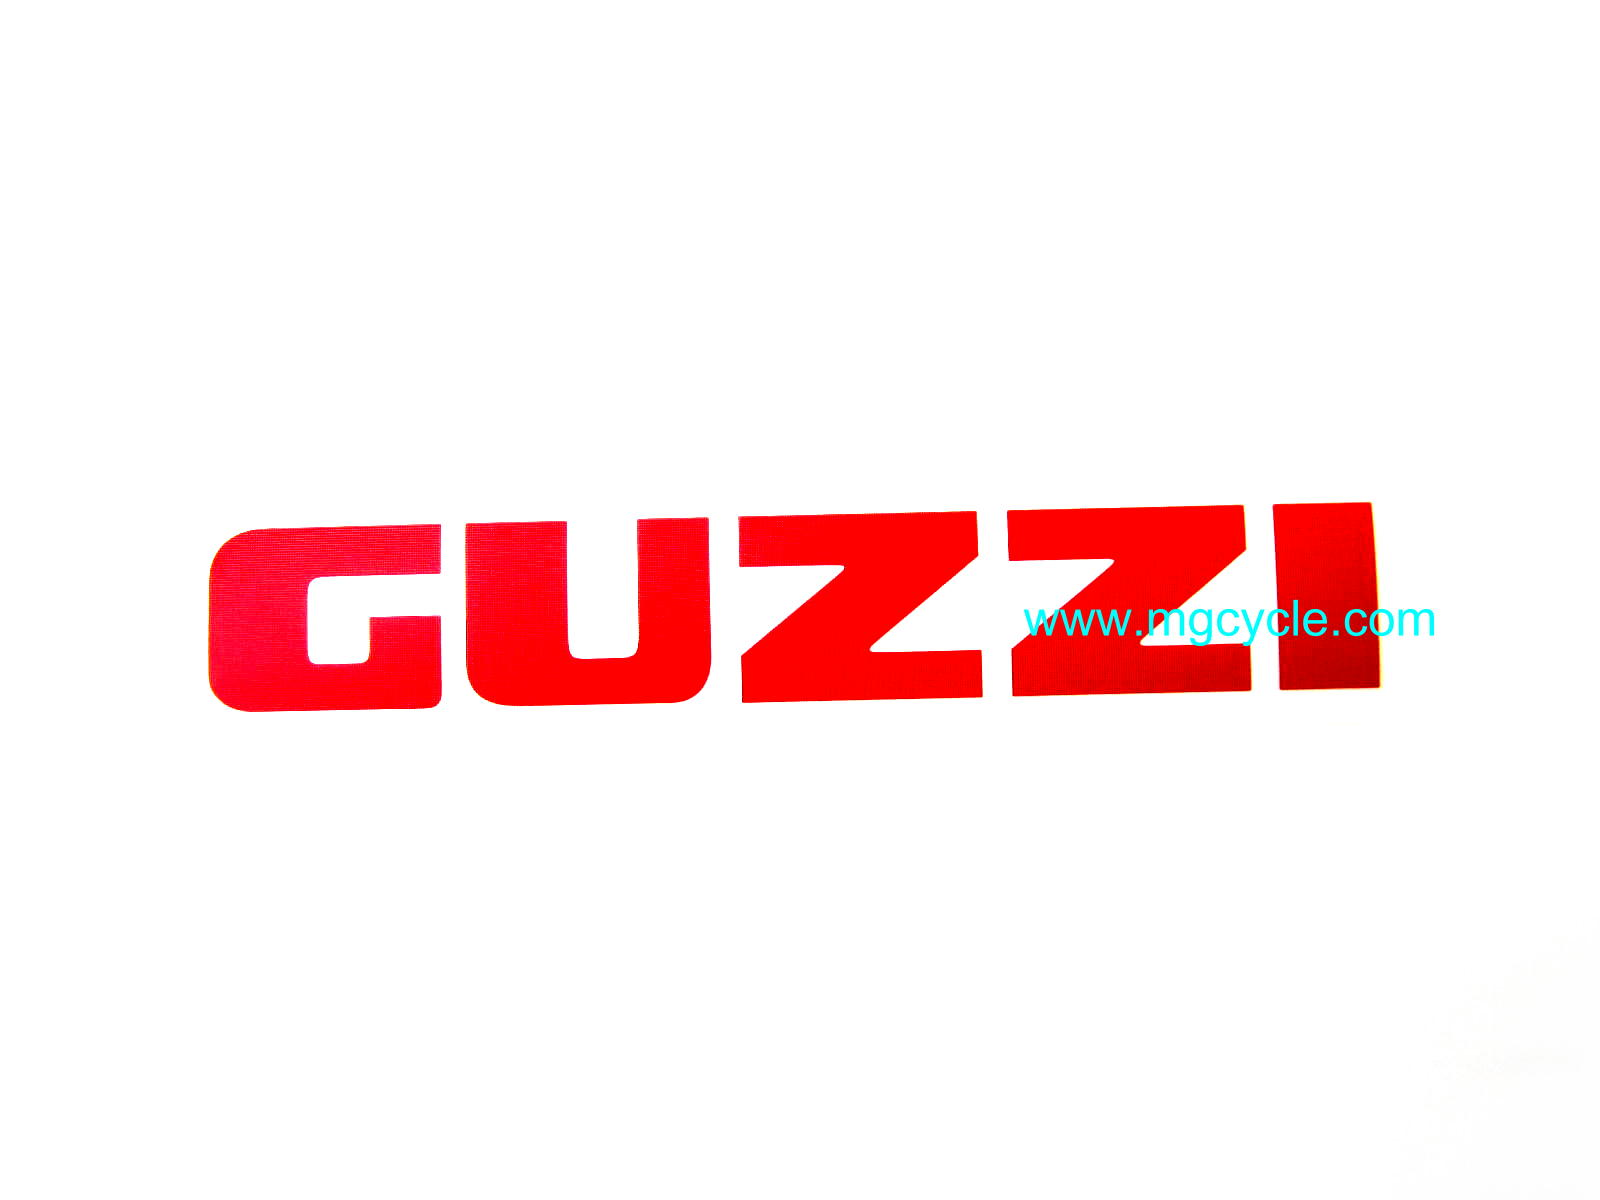 Guzzi fuel tank decal